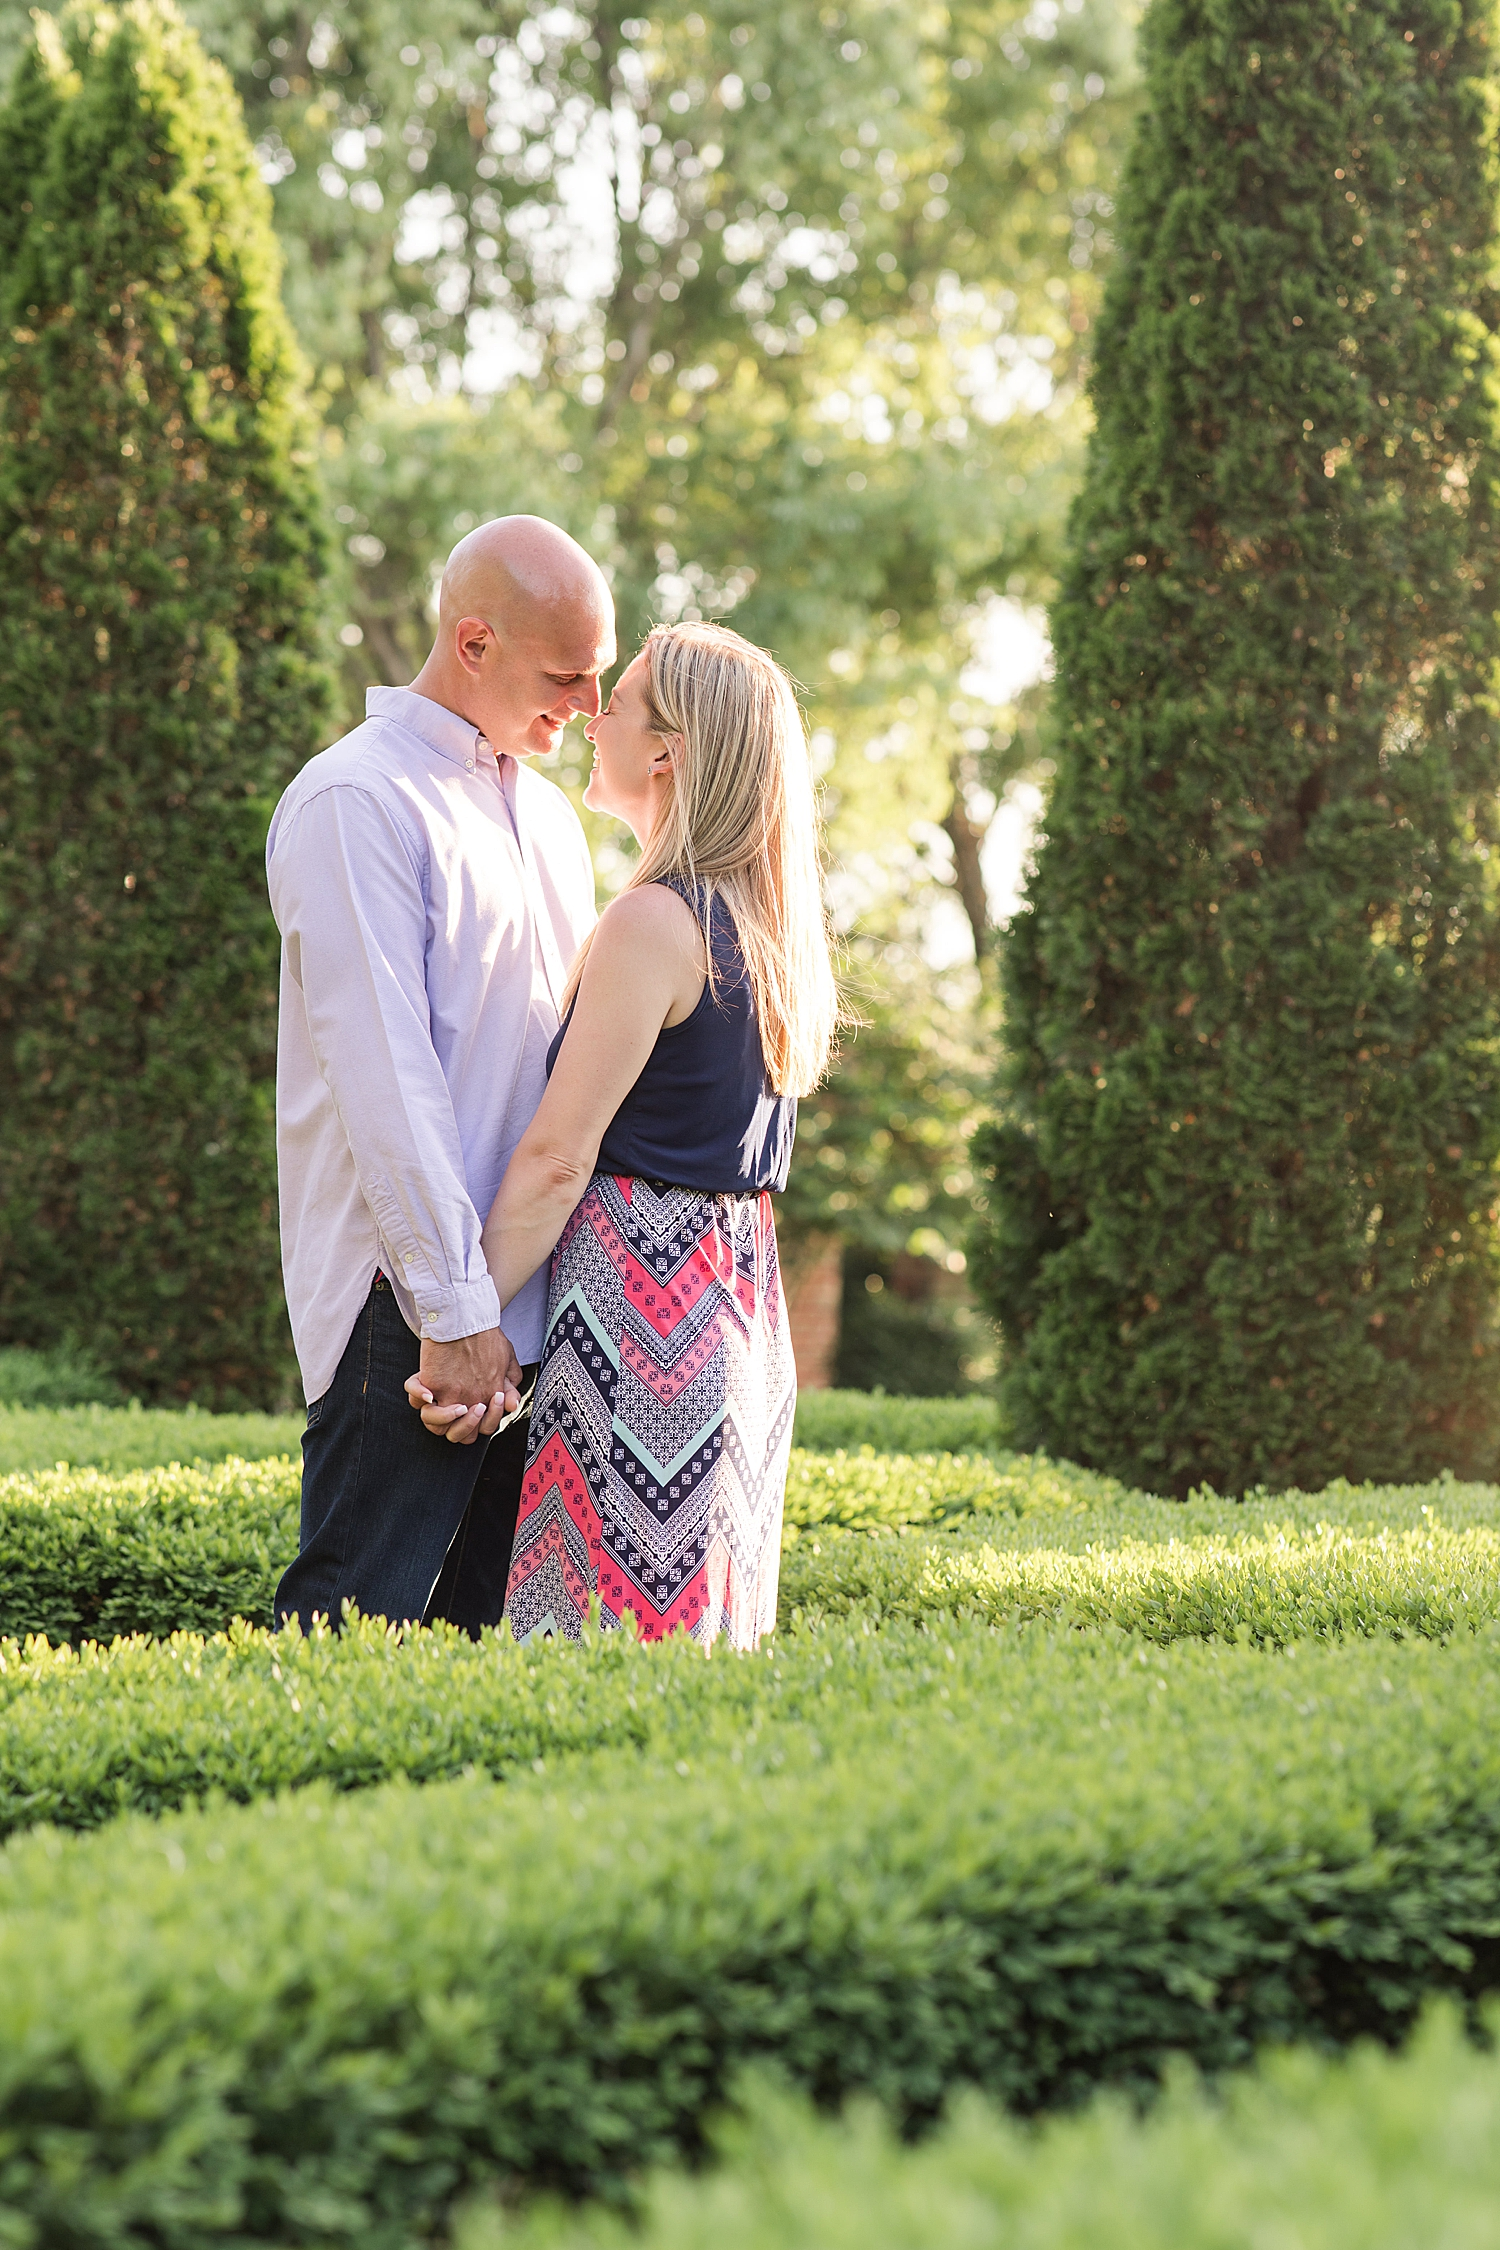 West Manor Estate Engagement Session Photo Virginia Wedding Photographer_0816.jpg